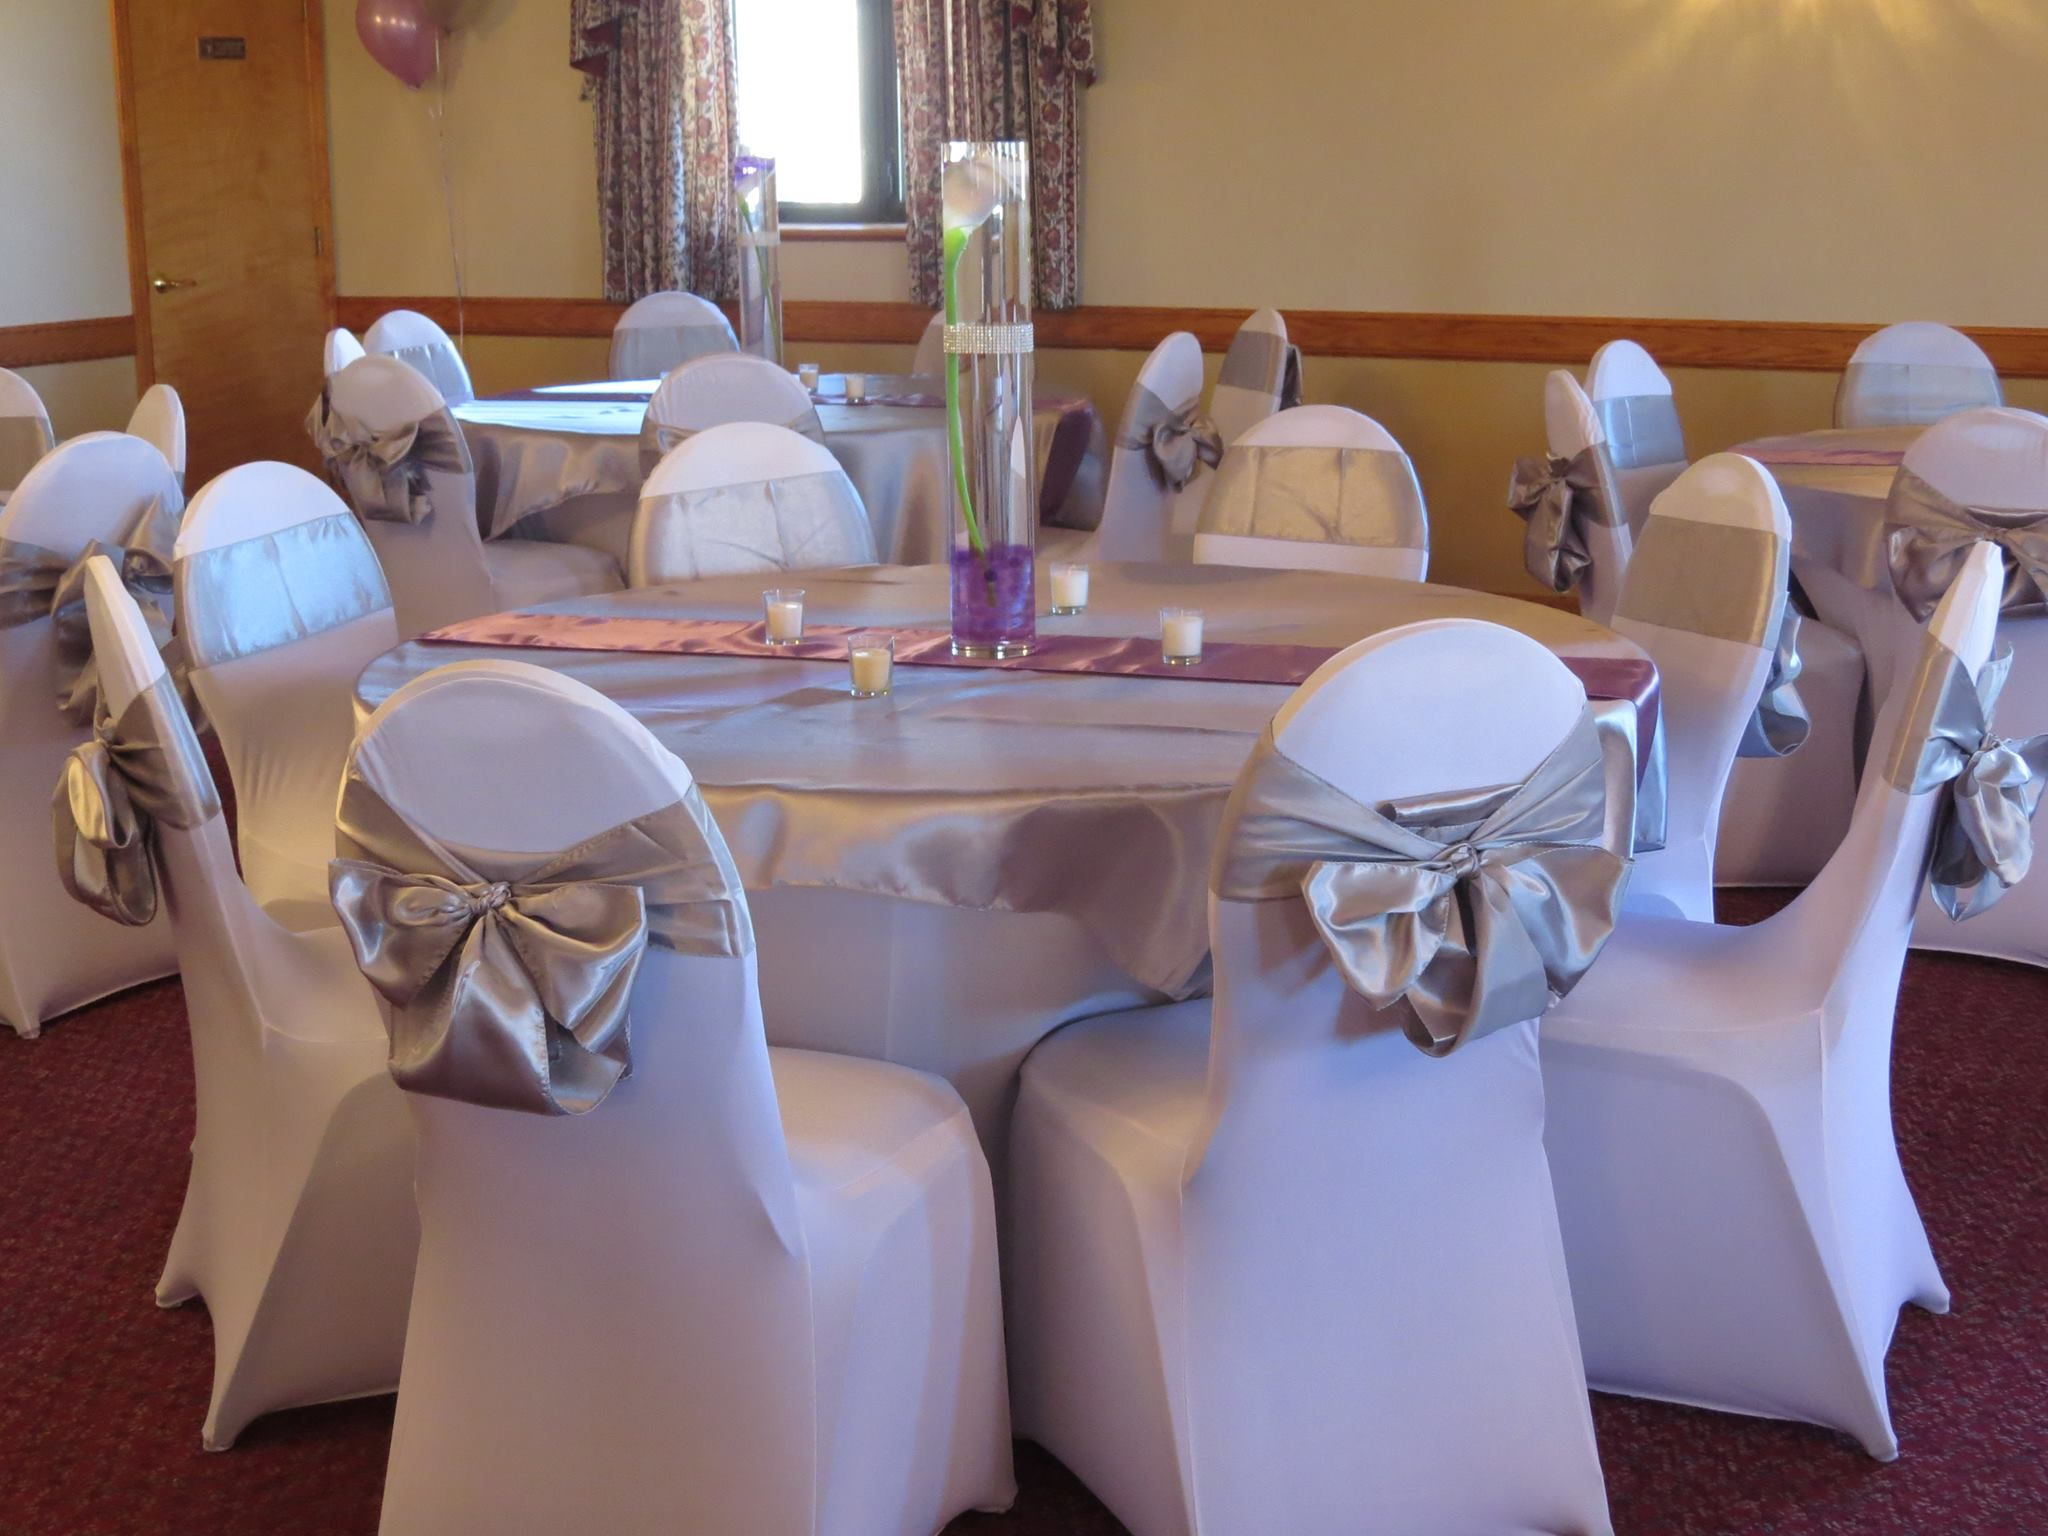 Chair Covers Wedding Costs Where To Buy Bean Bag Chairs Spandex And Table Silver Satin